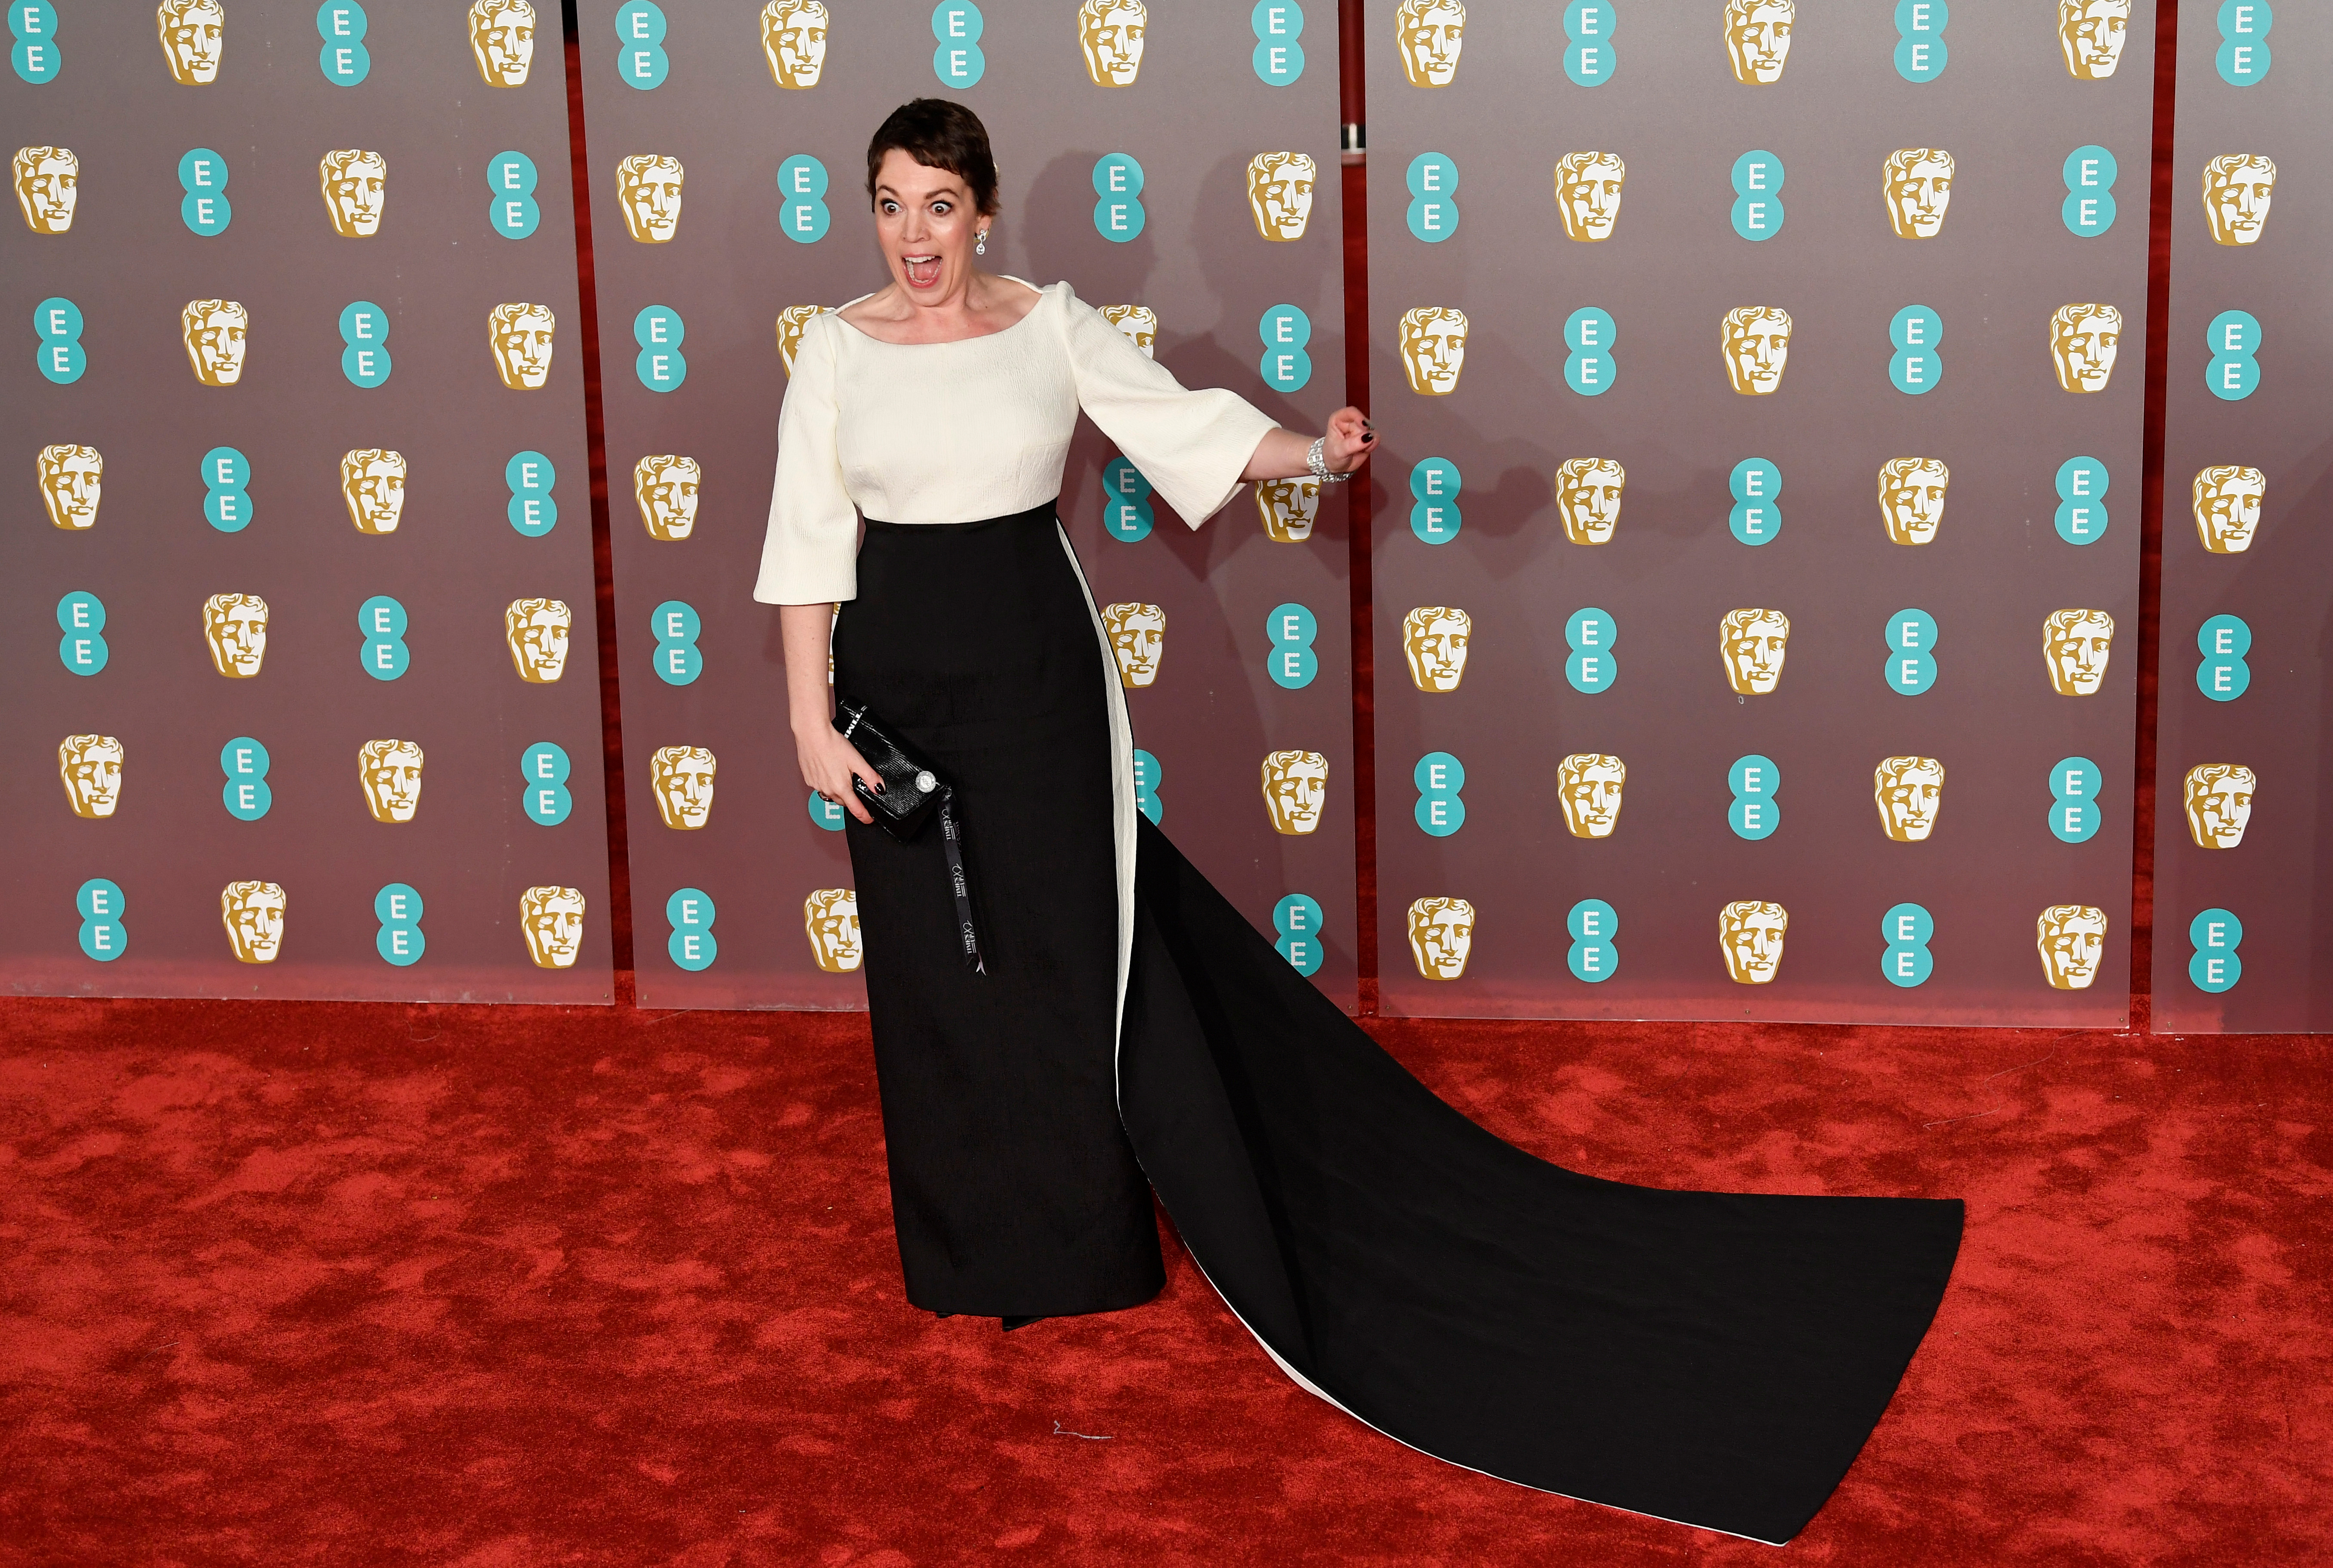 Hollywood glamor, shiny embellishments on BAFTA red carpet